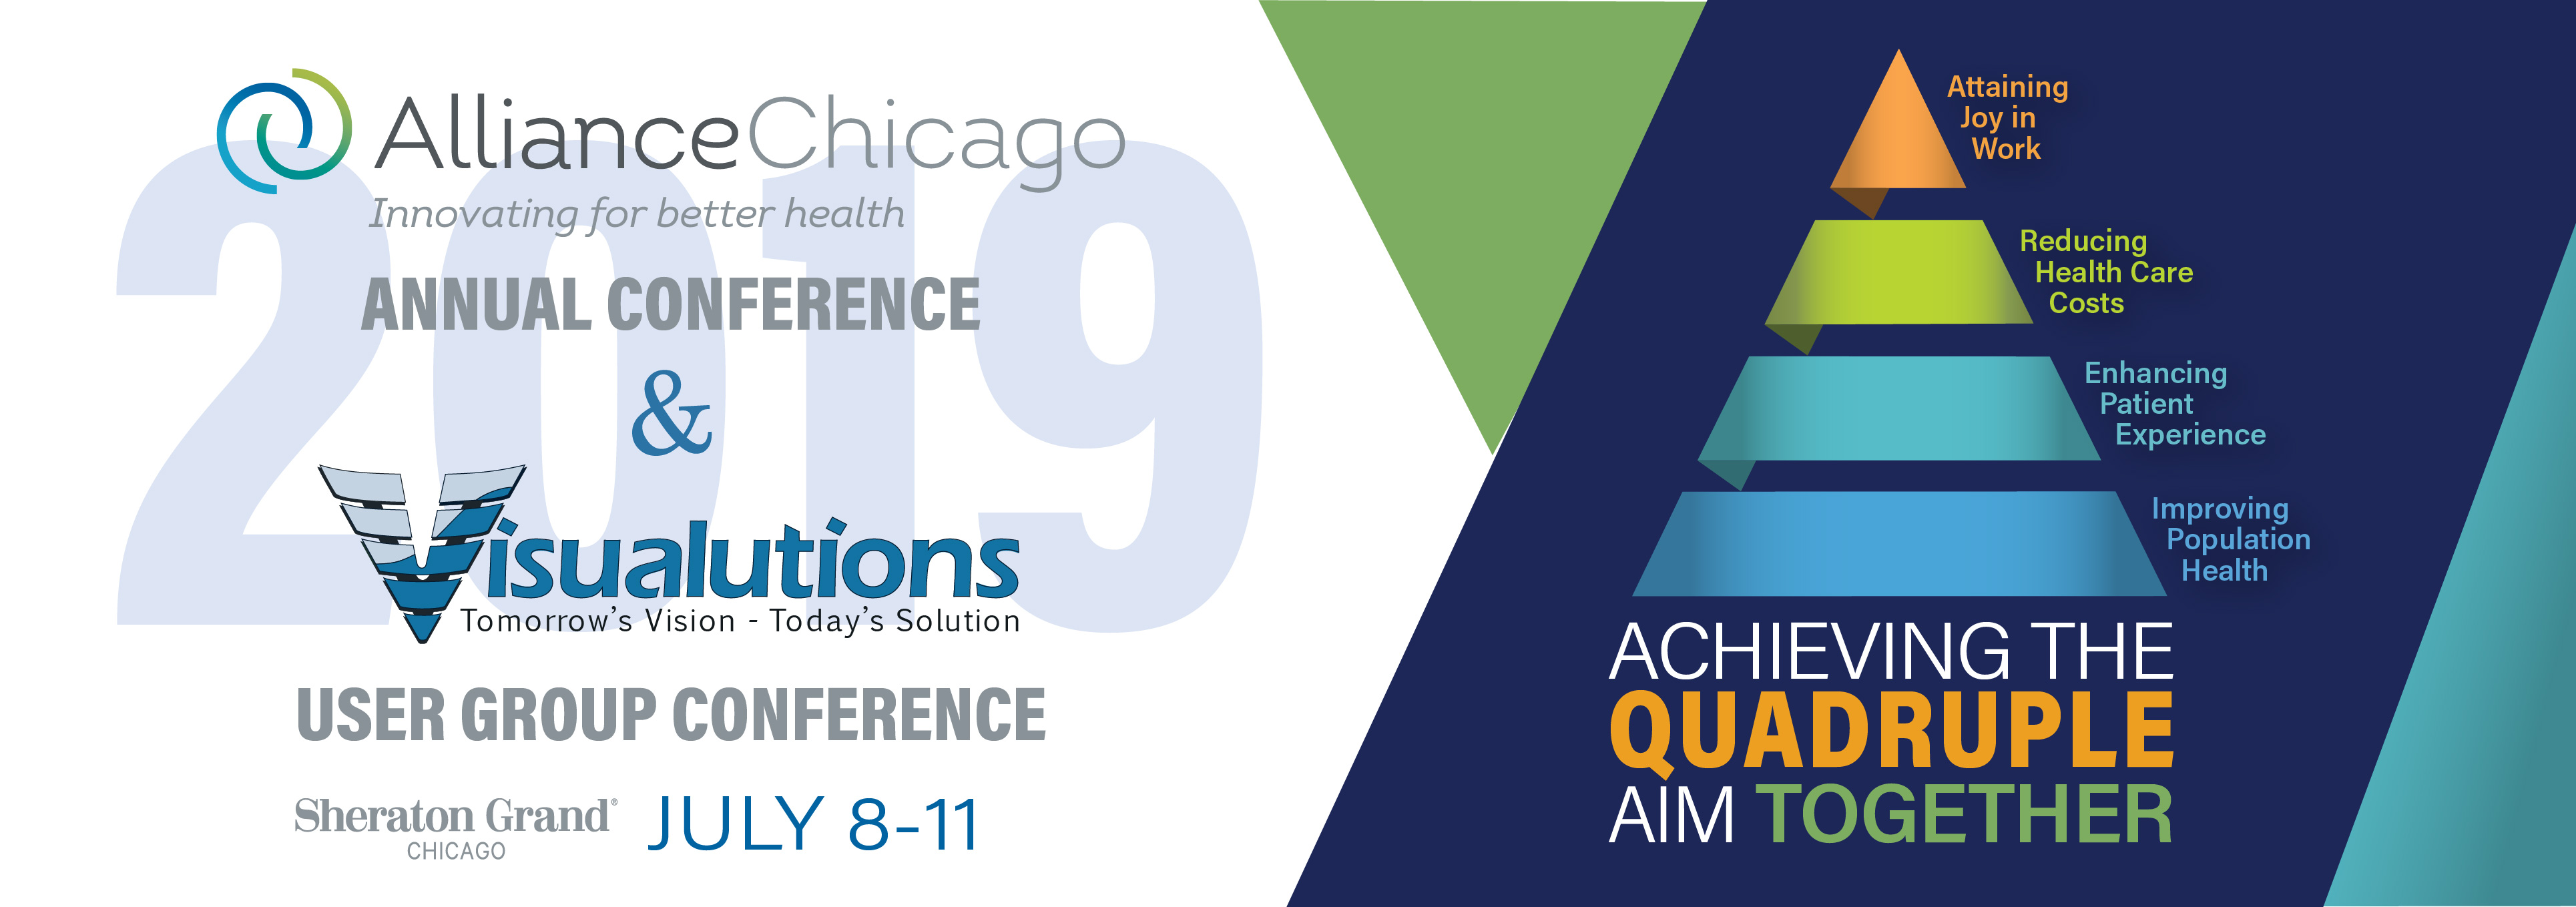 AllianceChicago 2019 Annual Conference & Visualutions 2019 User Group Conference